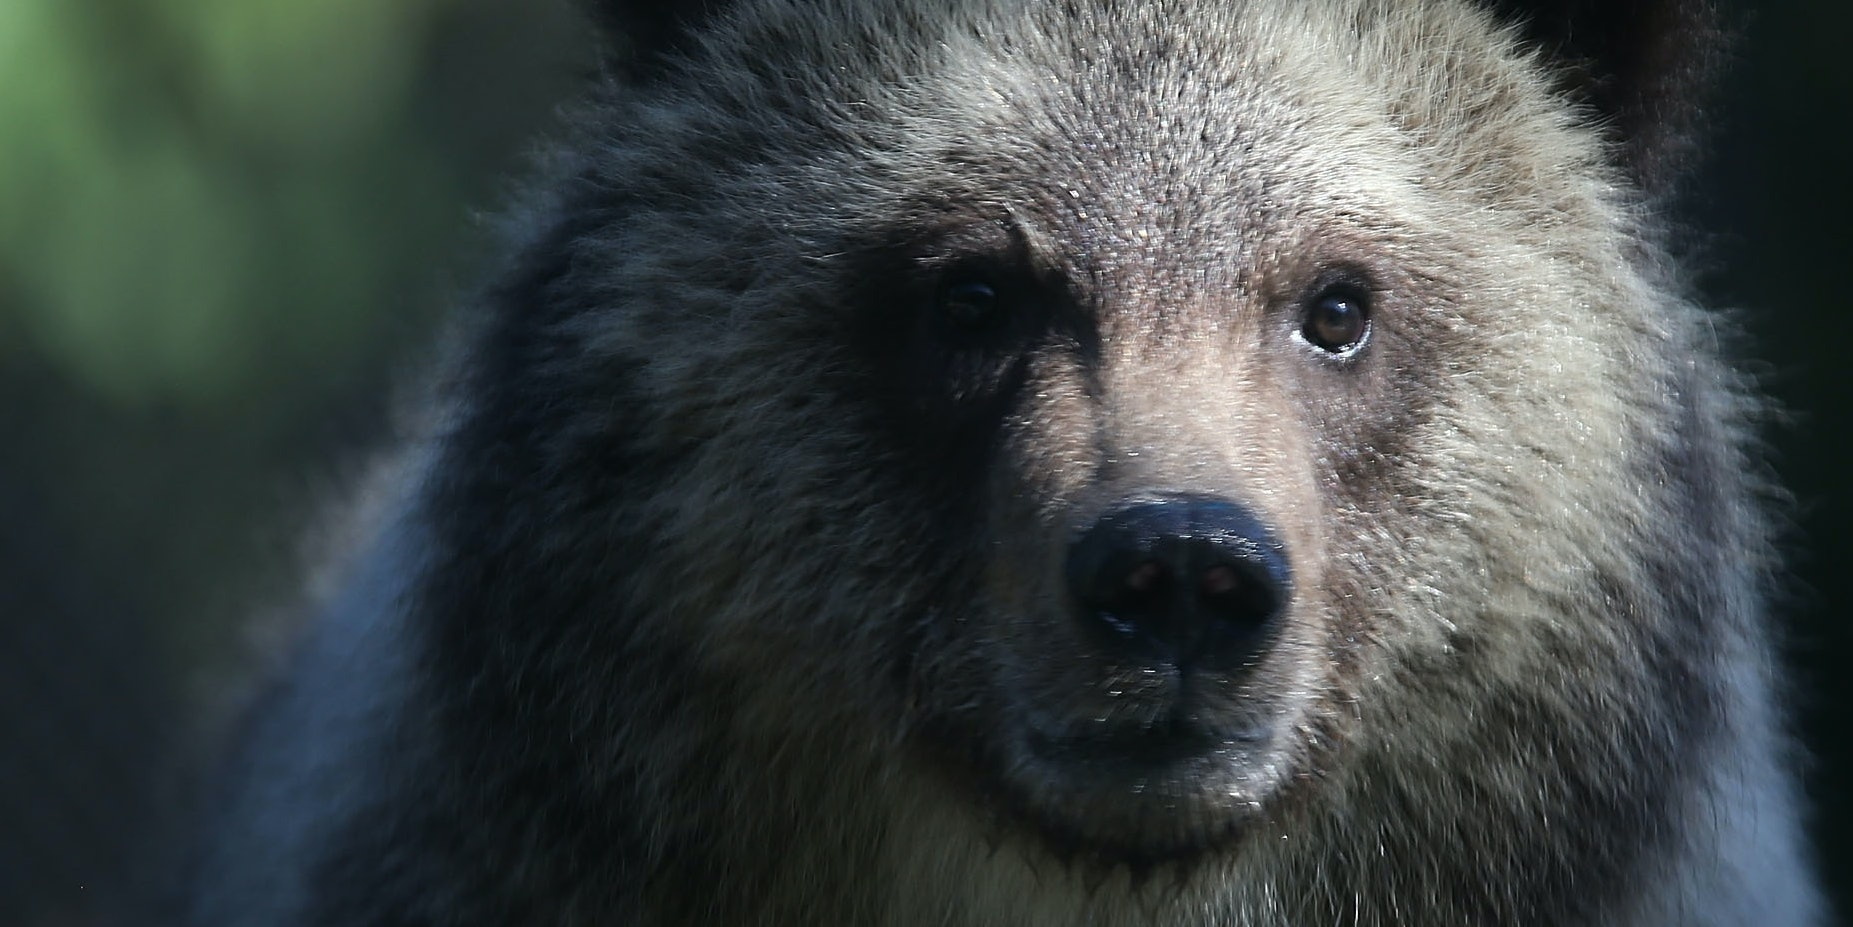 WEST PALM BEACH, FL - DECEMBER 17:  Grizzly bear cub named Juneau stands during her first day out in the public at the Palm Beach Zoo on December 17, 2015 in West Palm Beach, Florida.  The Zoo will host two-orphaned female grizzly bear cubs until their new permanent home in a South Dakota zoo is completed.  (Photo by Joe Raedle/Getty Images)